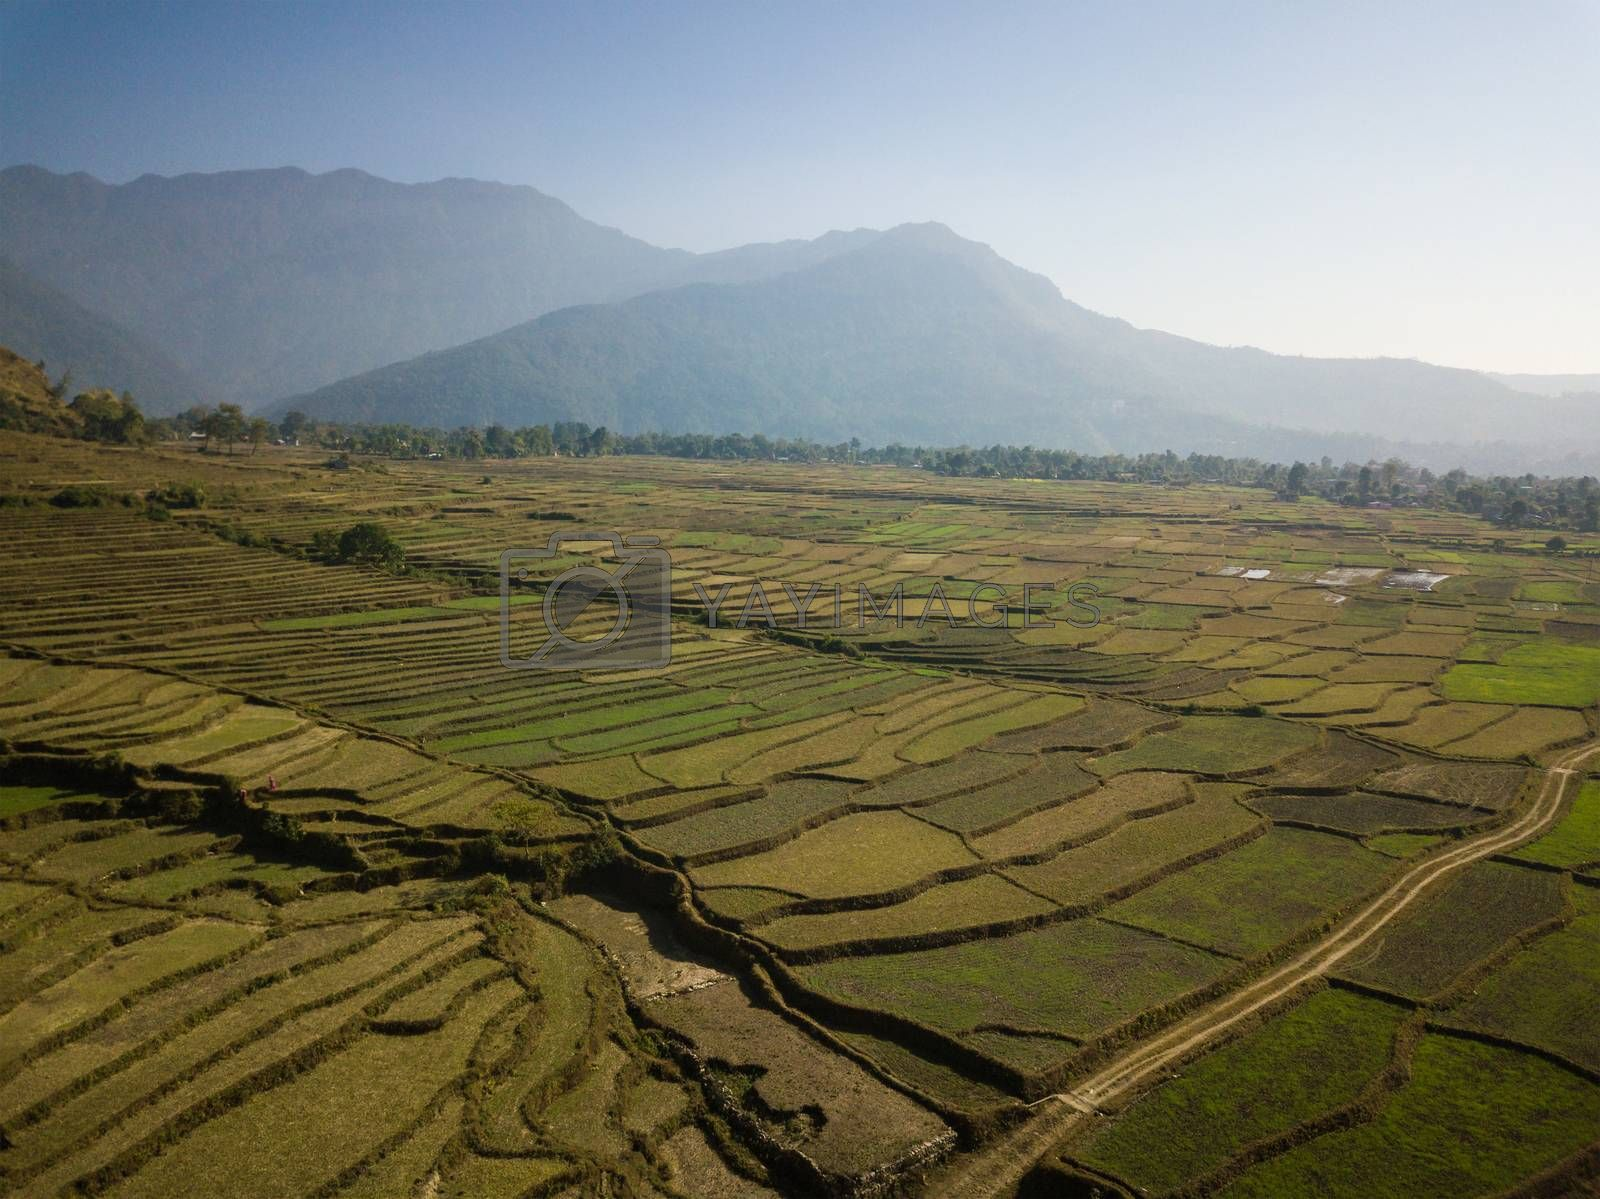 Aerial view of rural landscape in central Nepal. Paddy fields and hills in winter.